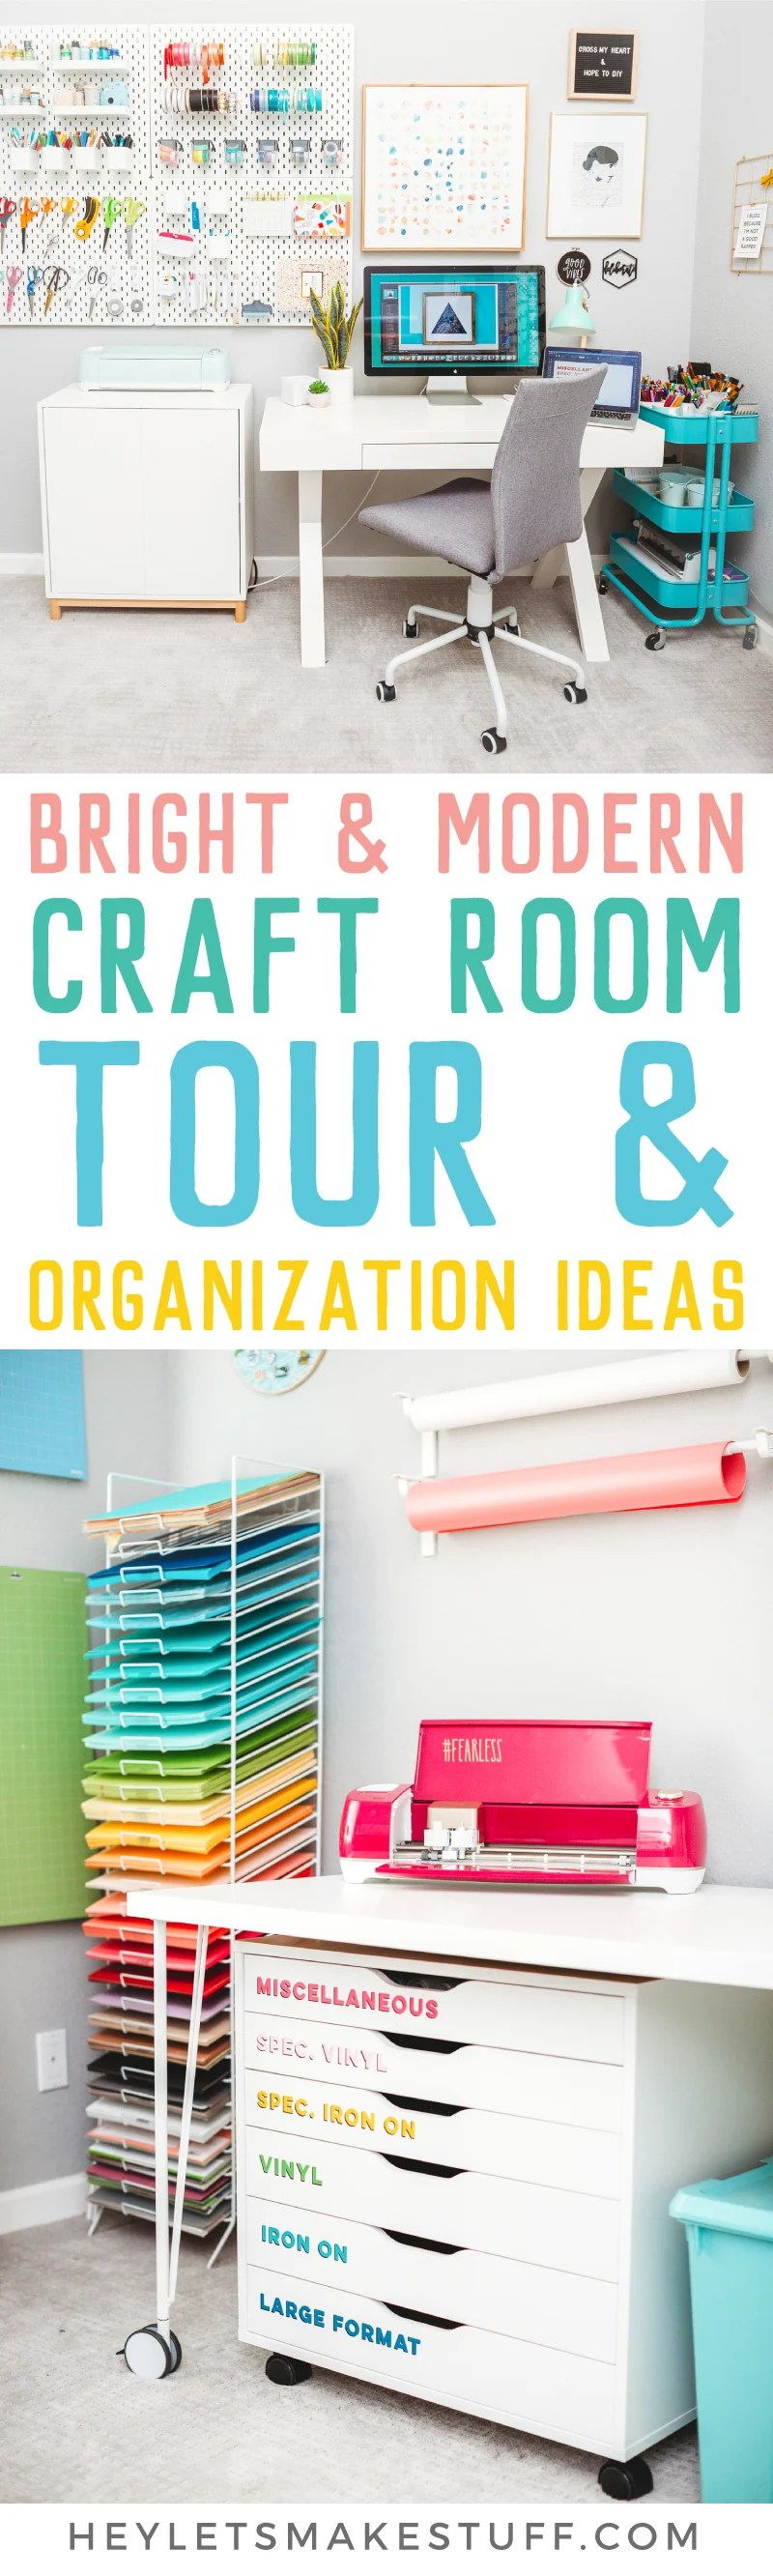 Excited to finally share my craft room reveal! It's chock full of craft room organization ideas to hide the clutter, plus all sorts of other modern craft room inspiration! via @heyletsmakestuf